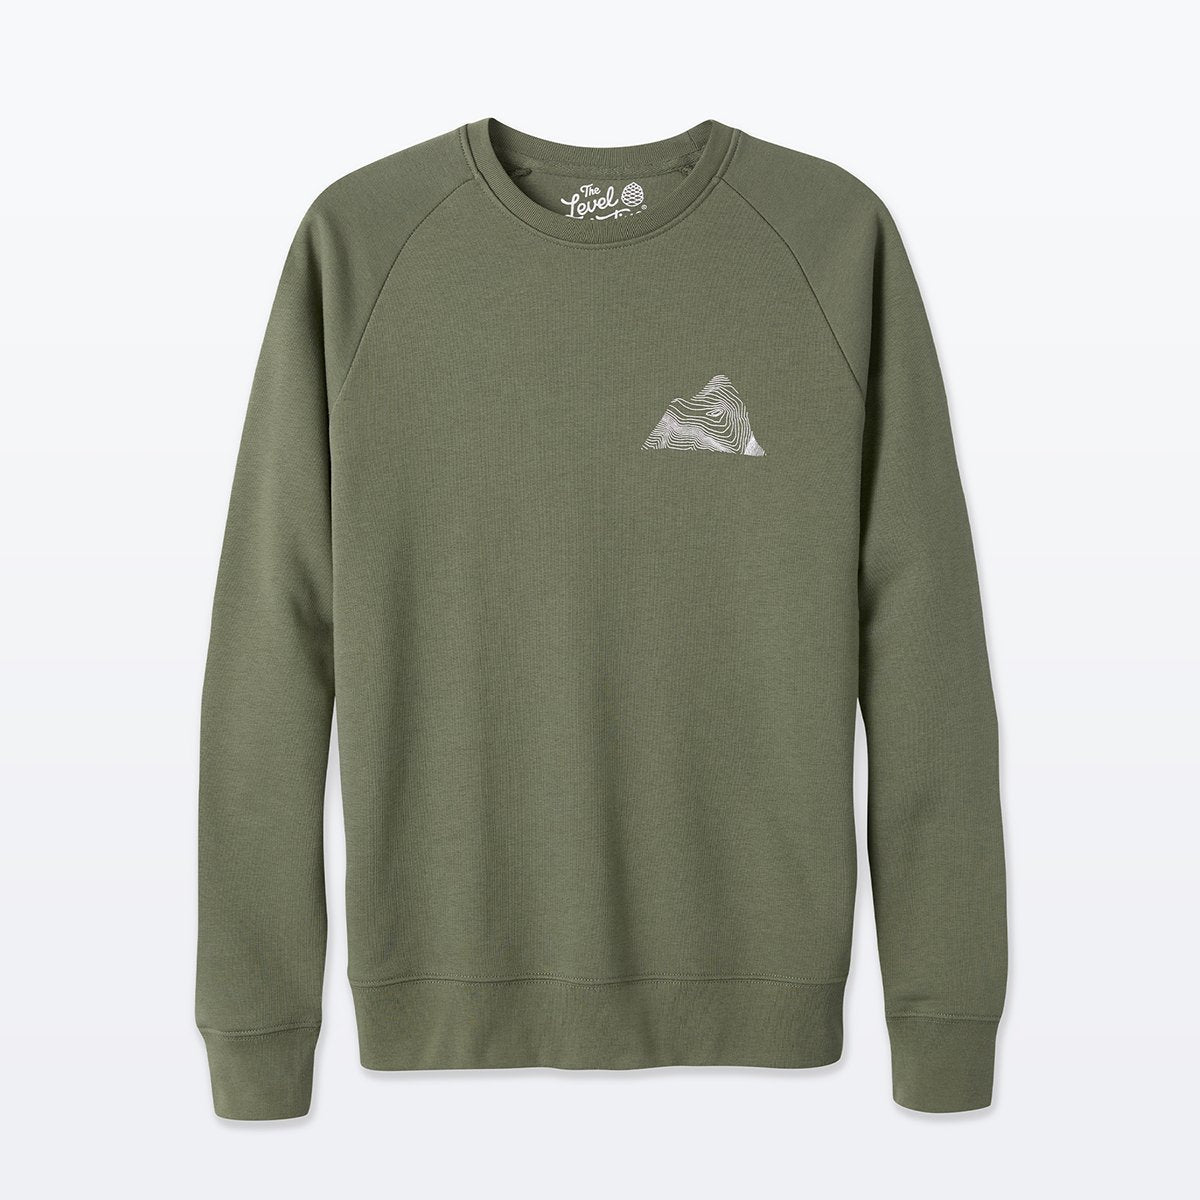 The Level Collective | Peaks Sweatshirt | Cotton Jumper | Khaki Green